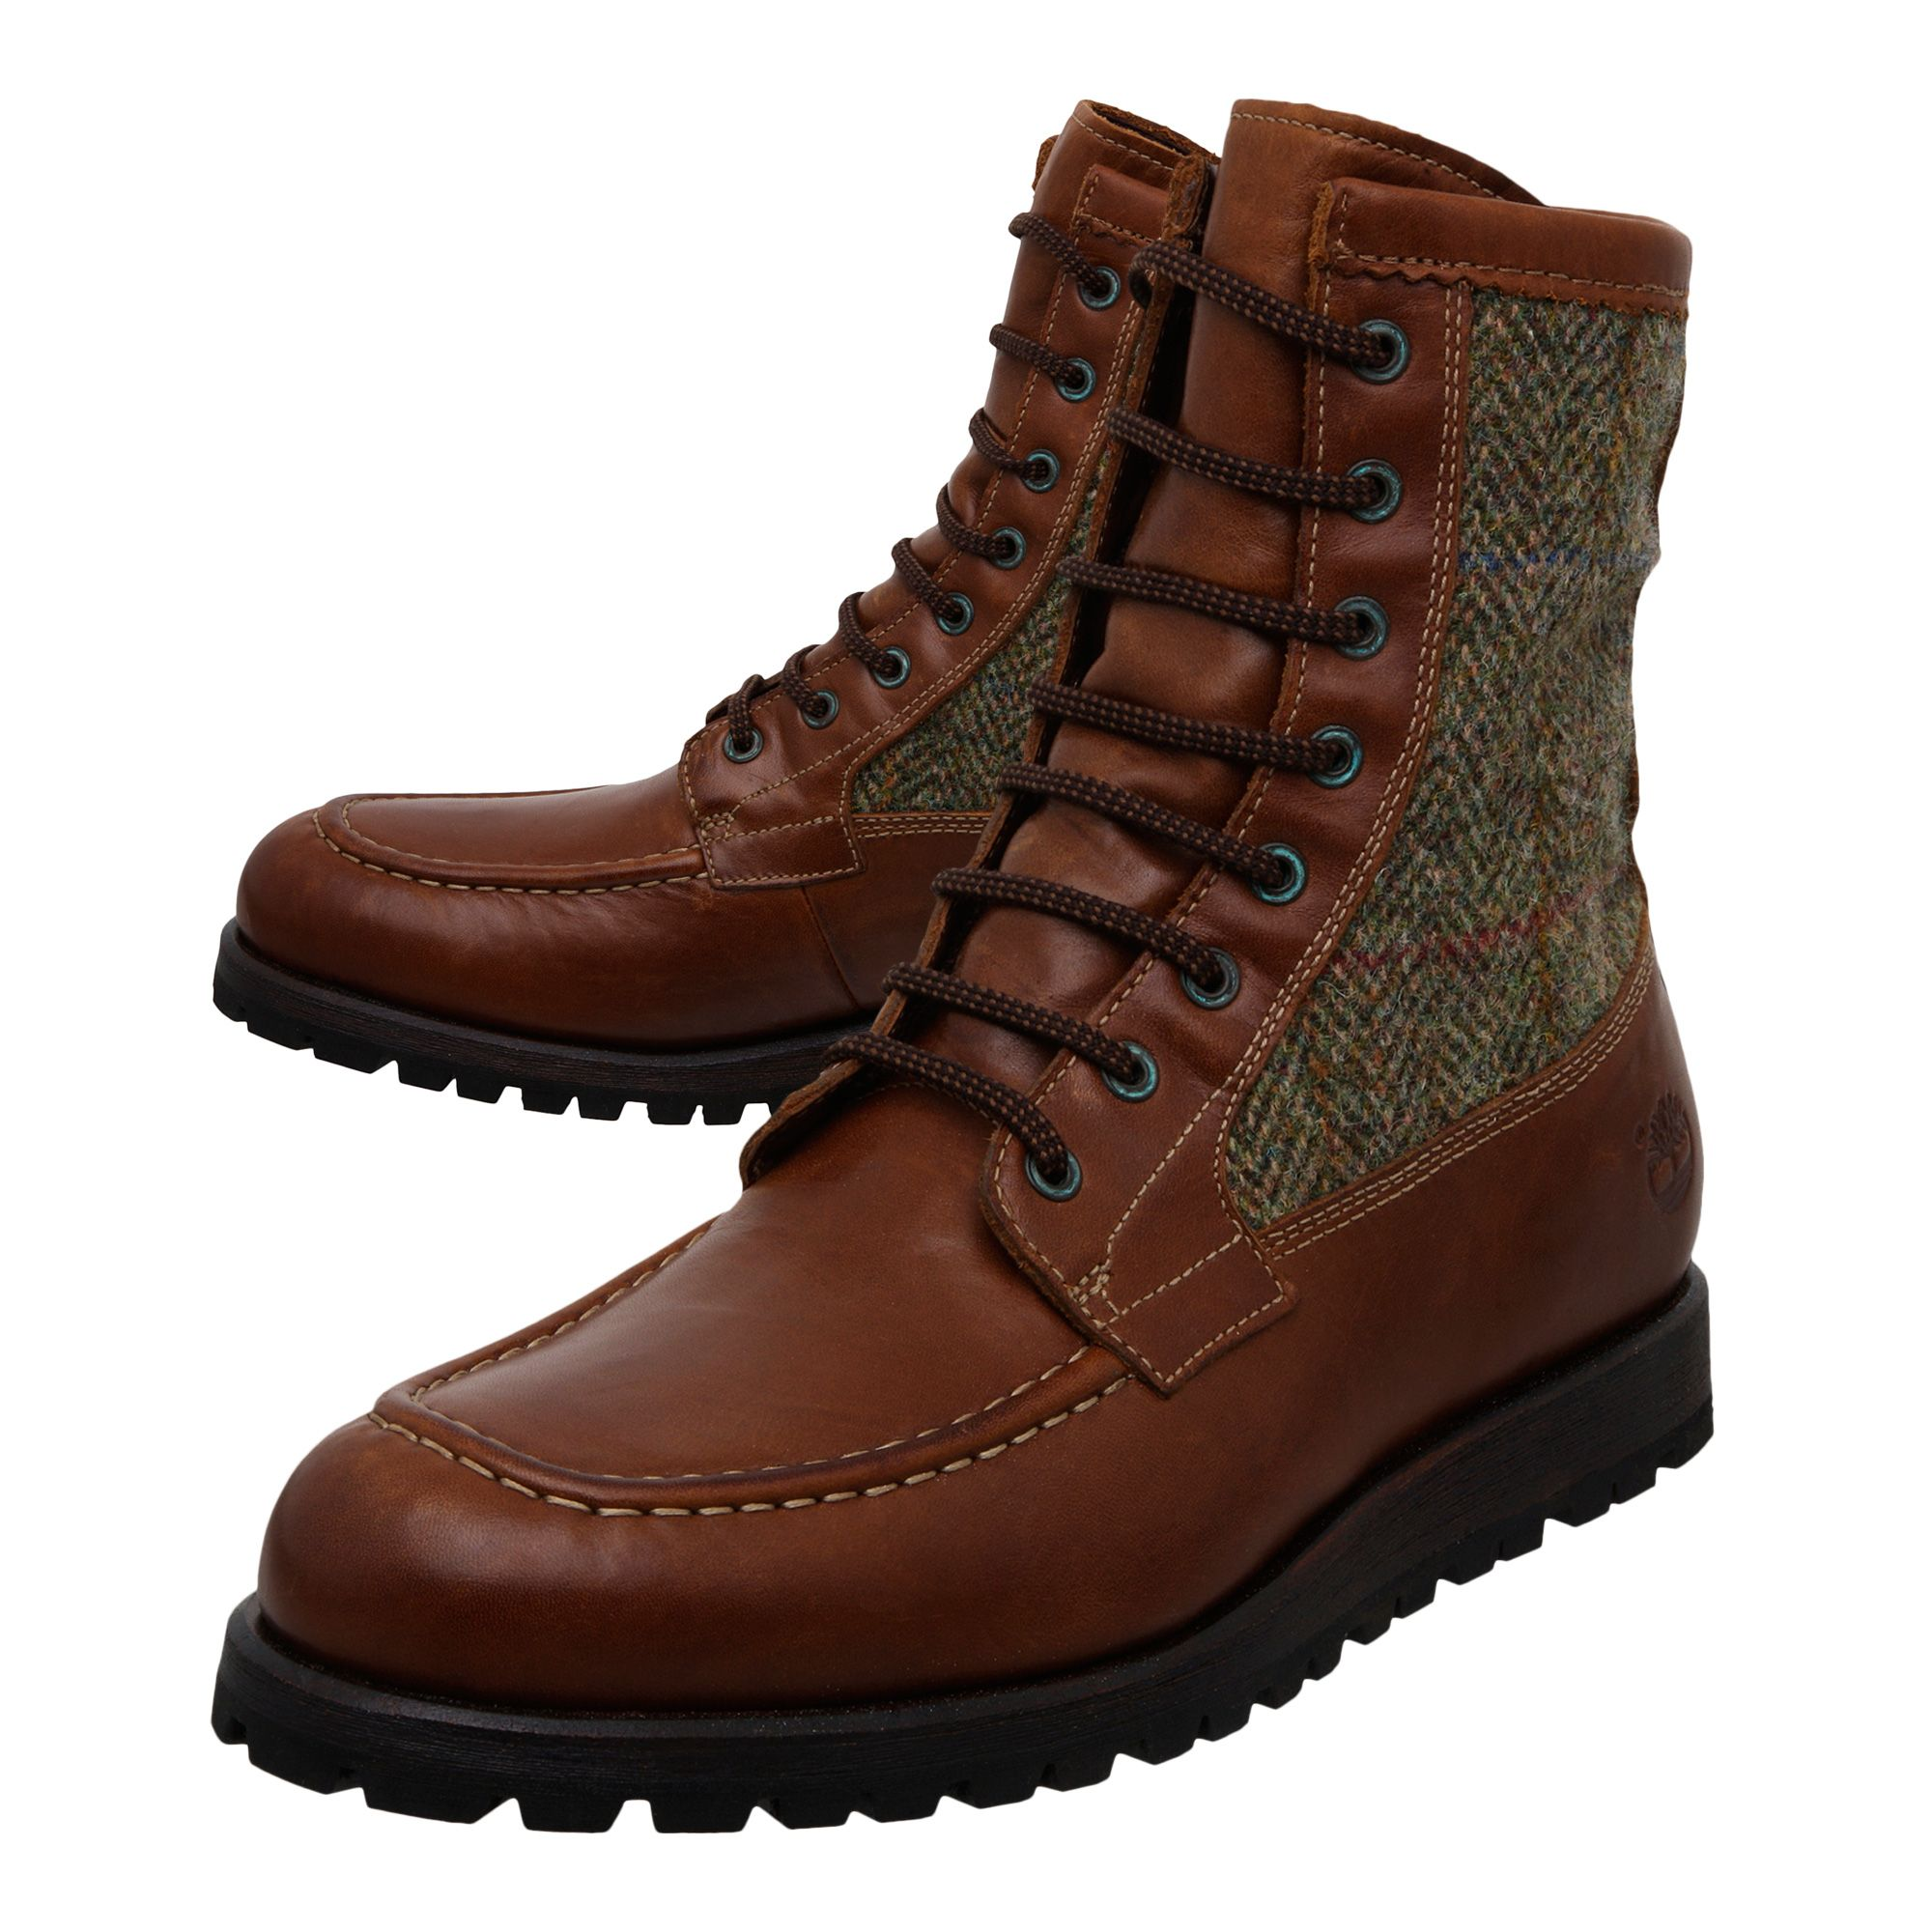 Shop Ariat Men's Dress Boots on yageimer.ga! Ariat offers a wide selection of Cowboy Dress Boots for Men including black dress boots and exotic dress boots. Shop the entire Men's Dress boot collection here on yageimer.ga